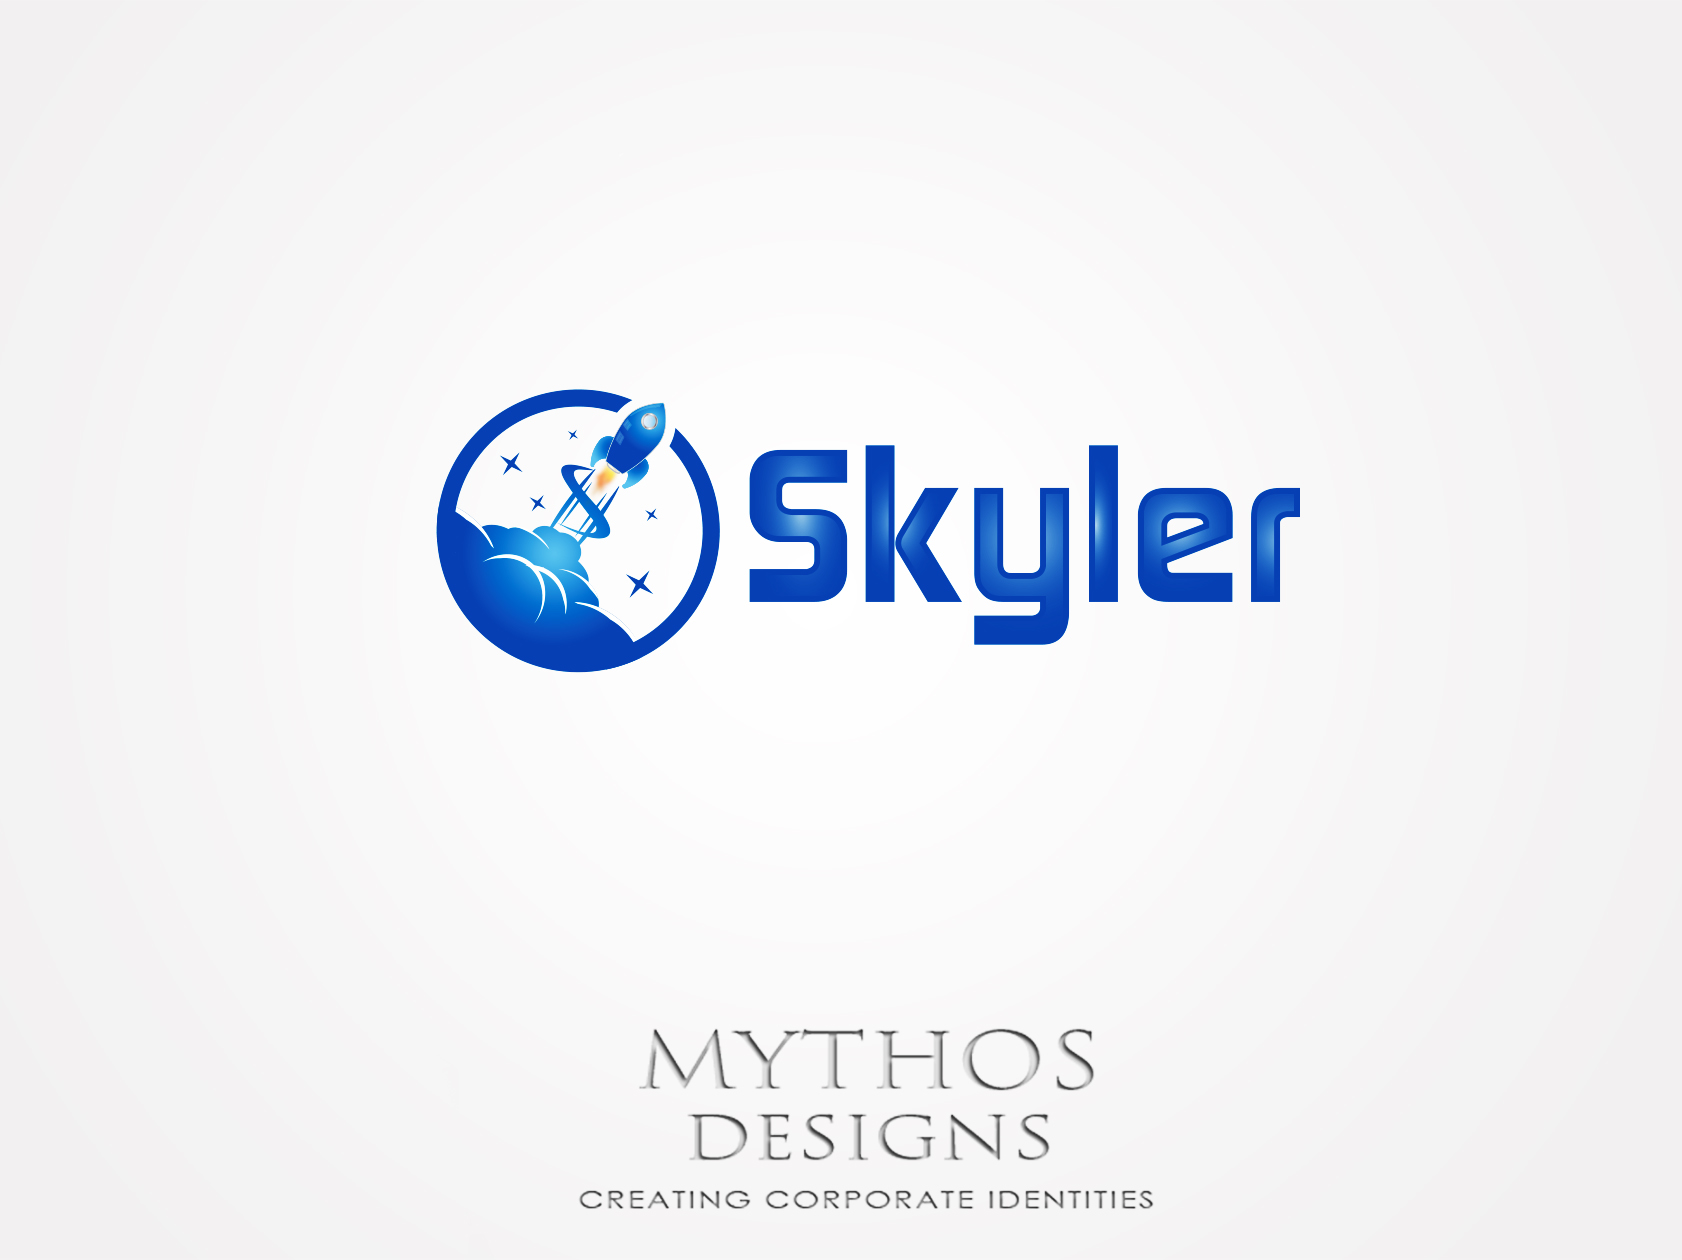 Logo Design by Mythos Designs - Entry No. 30 in the Logo Design Contest Artistic Logo Design for Skyler.Asia.